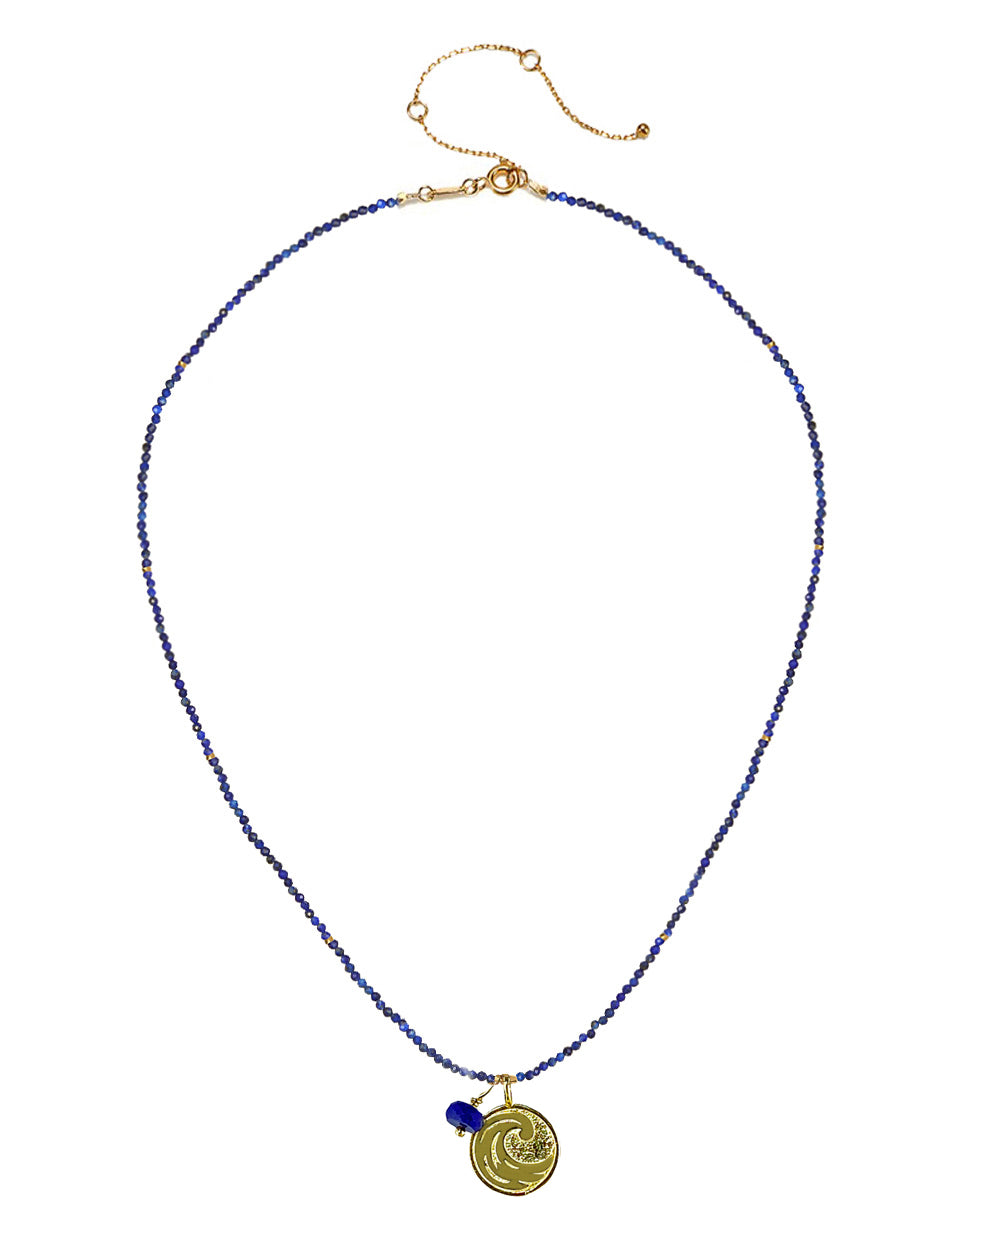 Water Elements Necklace with Lapis in Gold Vermeil